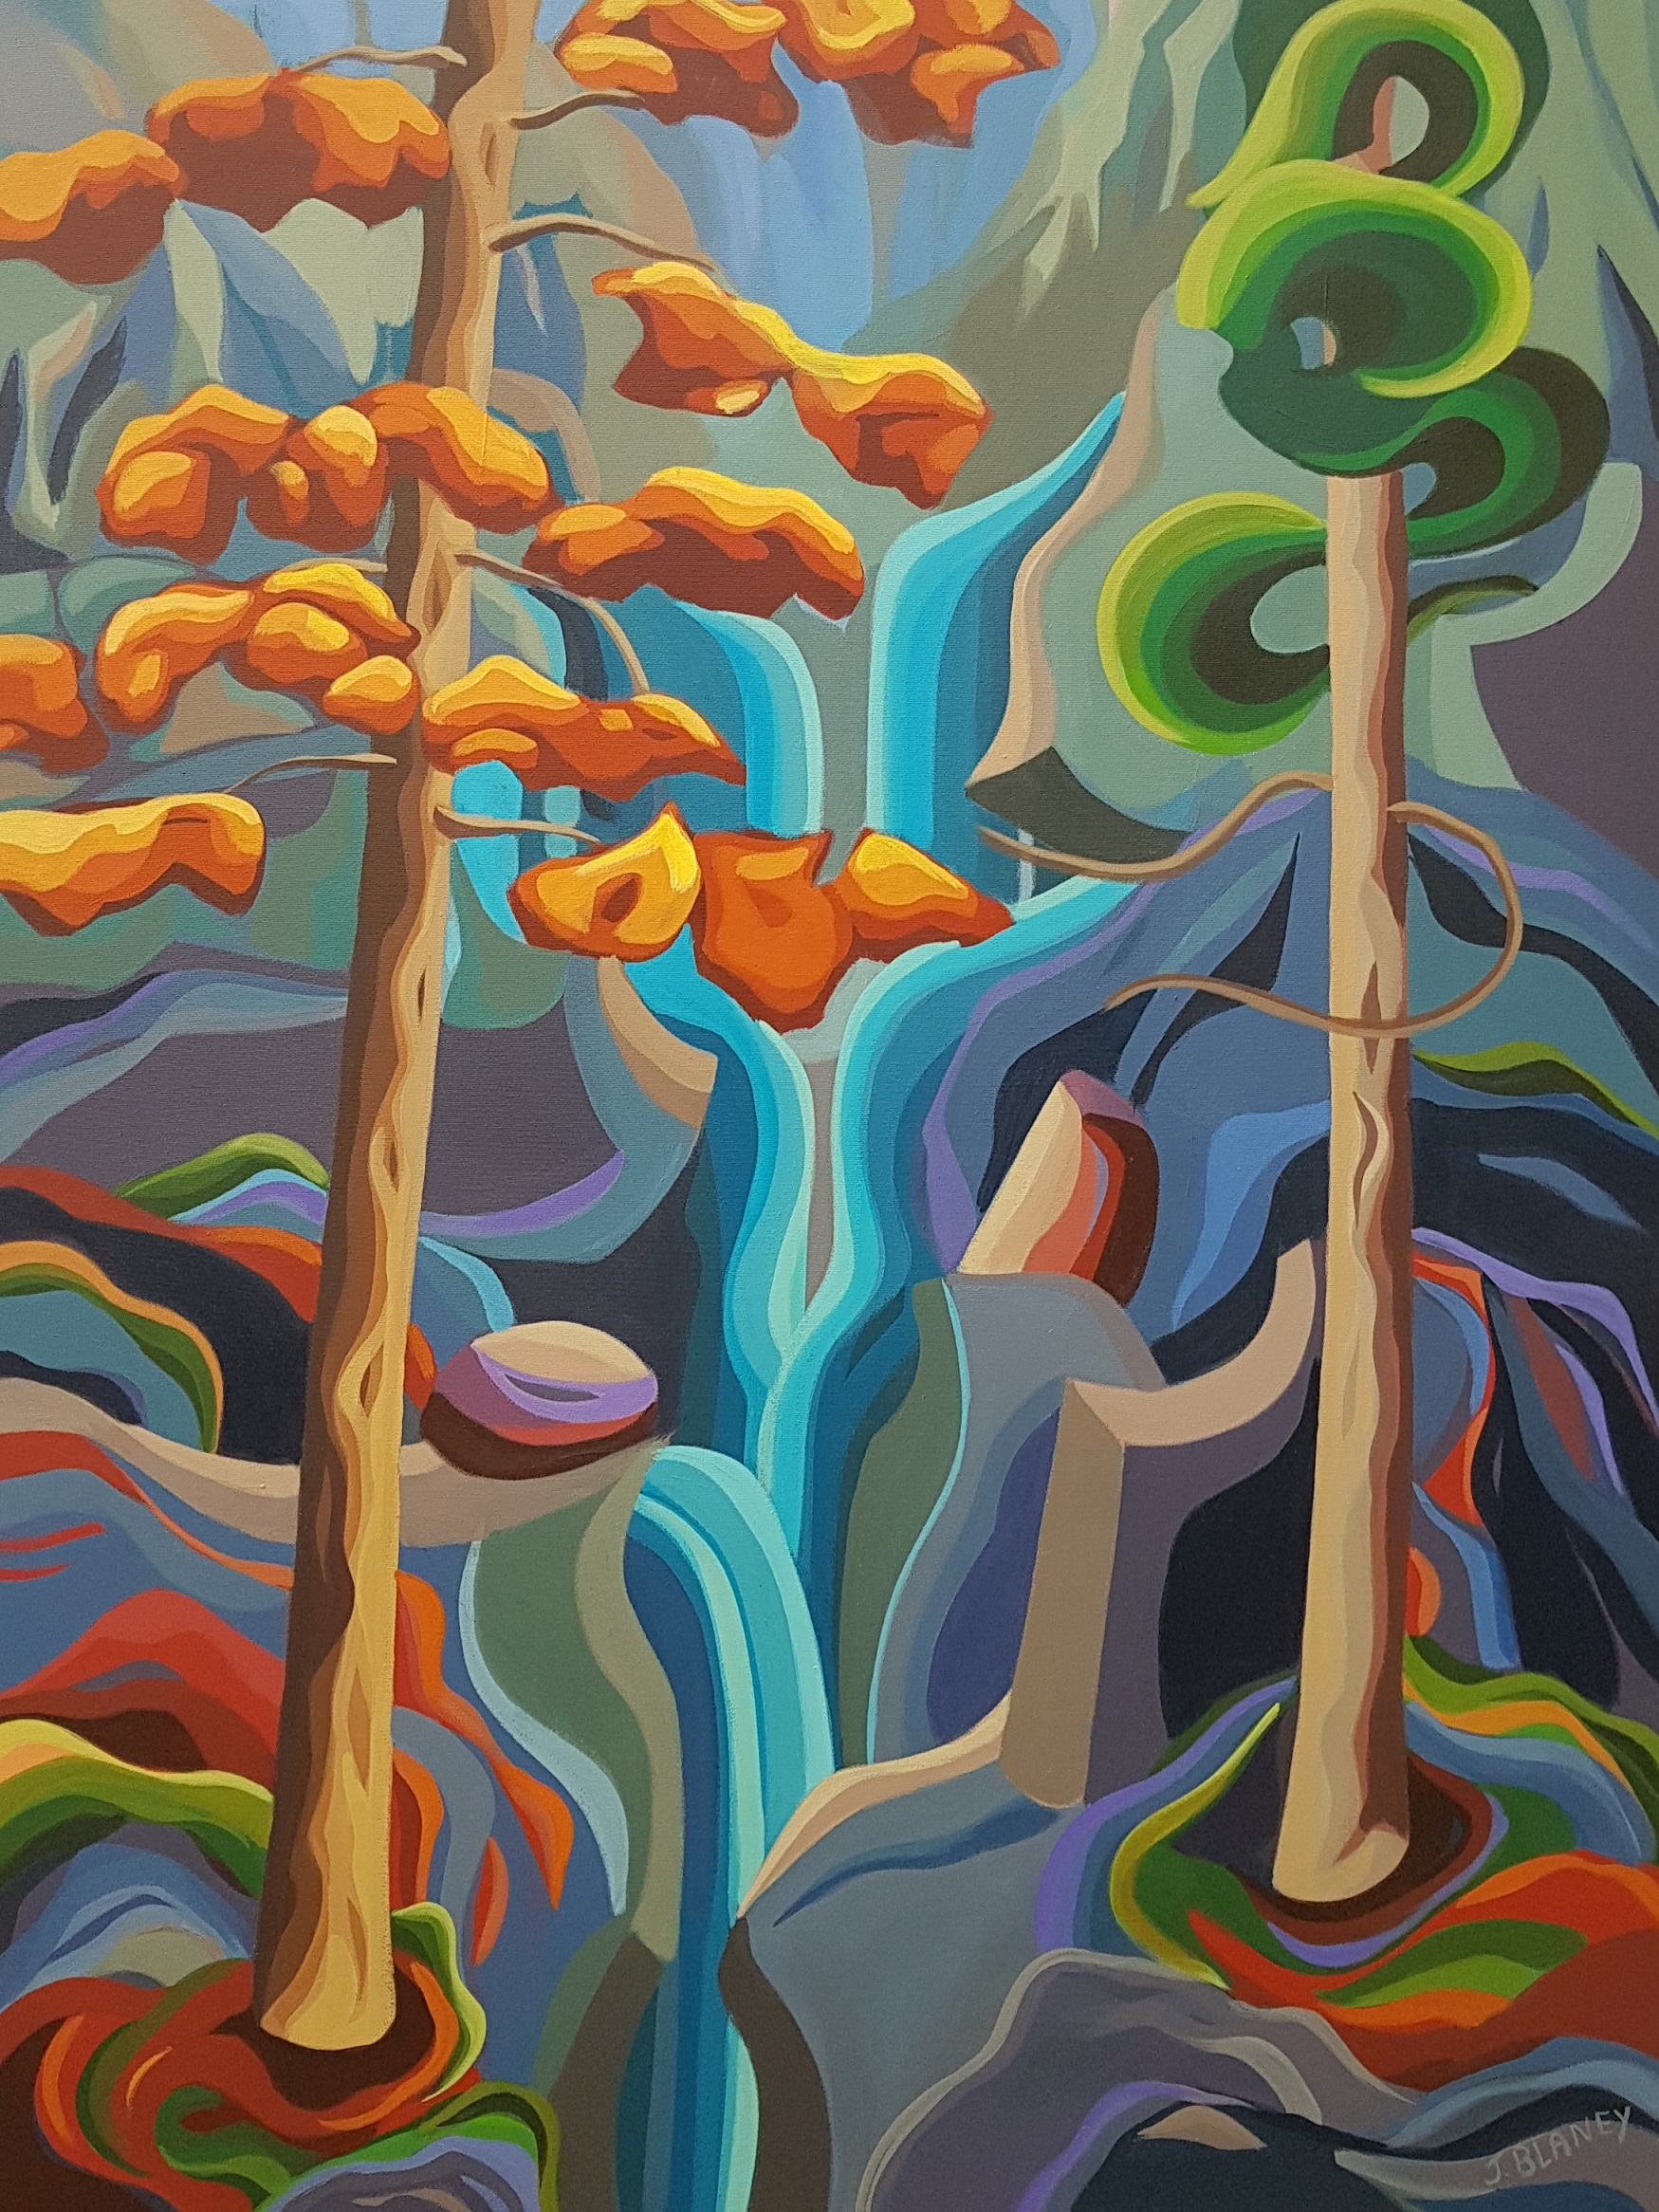 Rock and Flow artwork by Jodie Blaney - art listed for sale on Artplode